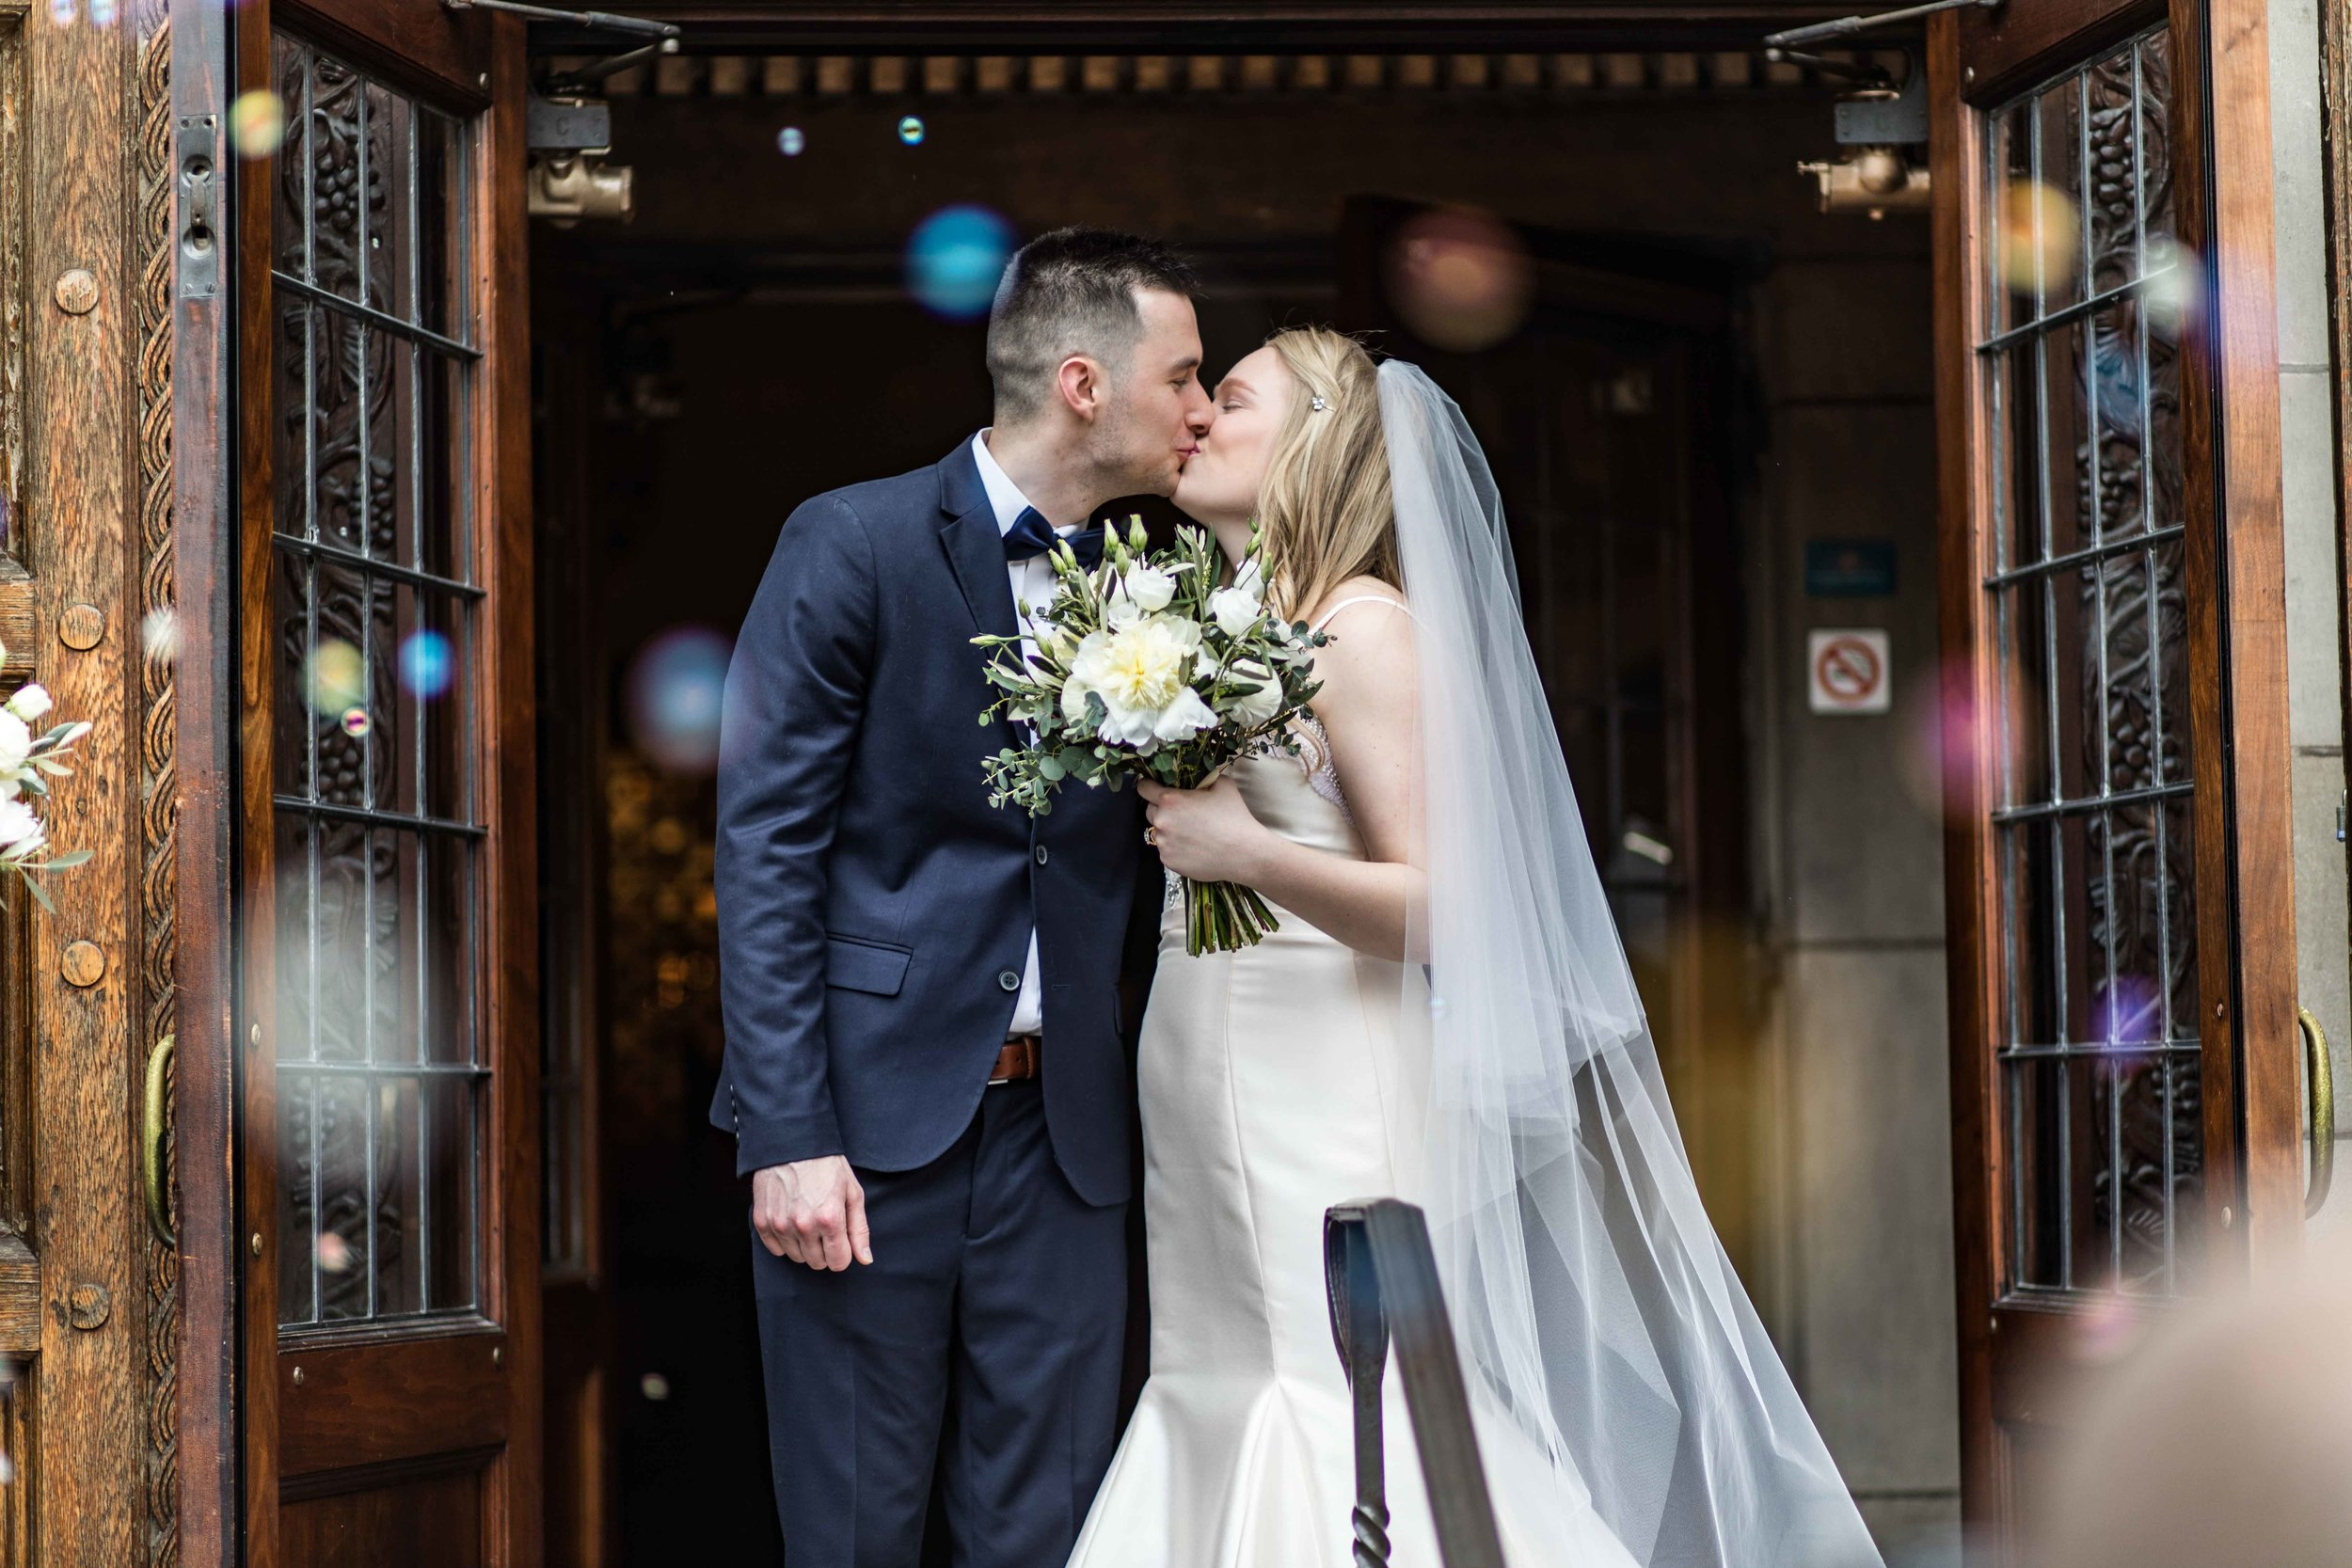 Bride and Groom kiss in a cloud of bubbles in front of church